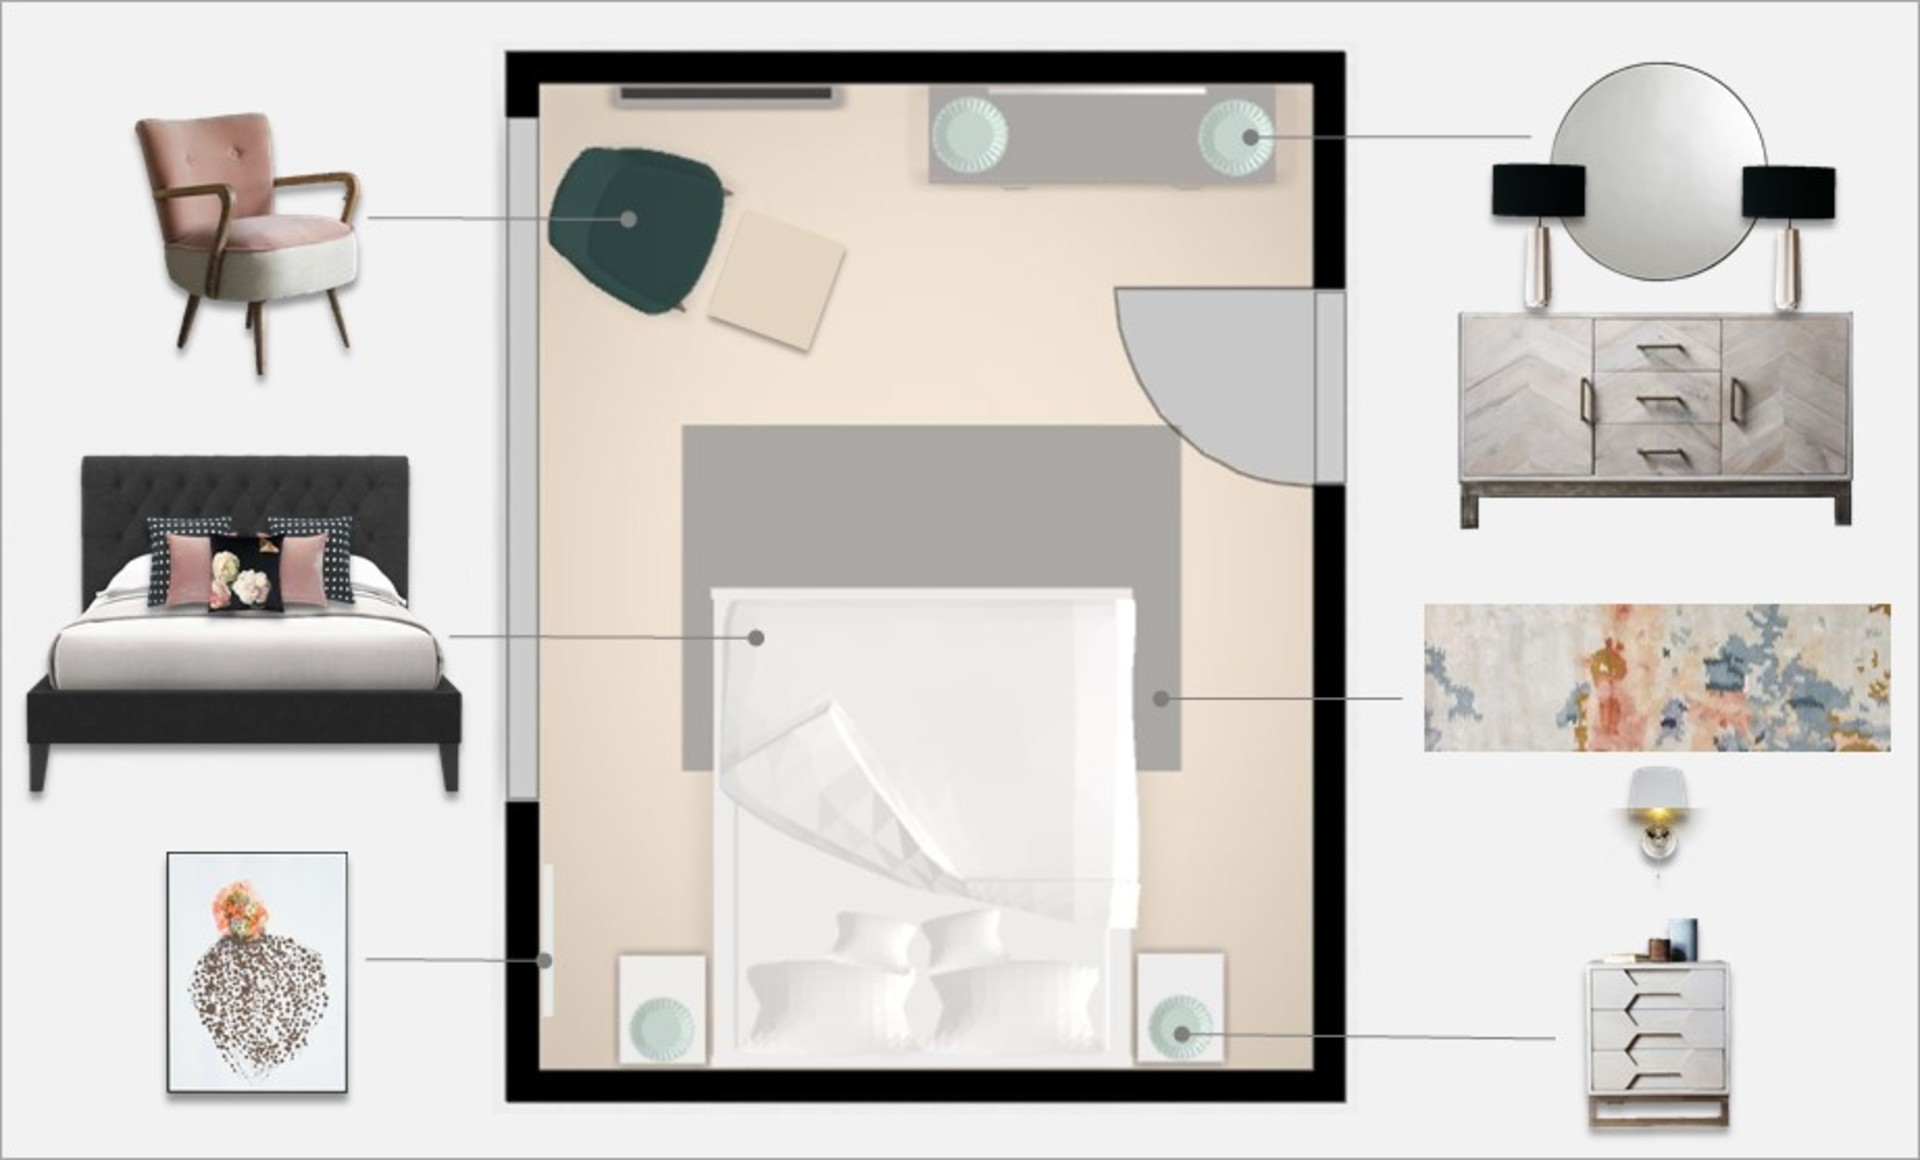 Master bedroom step 9 annotated plan